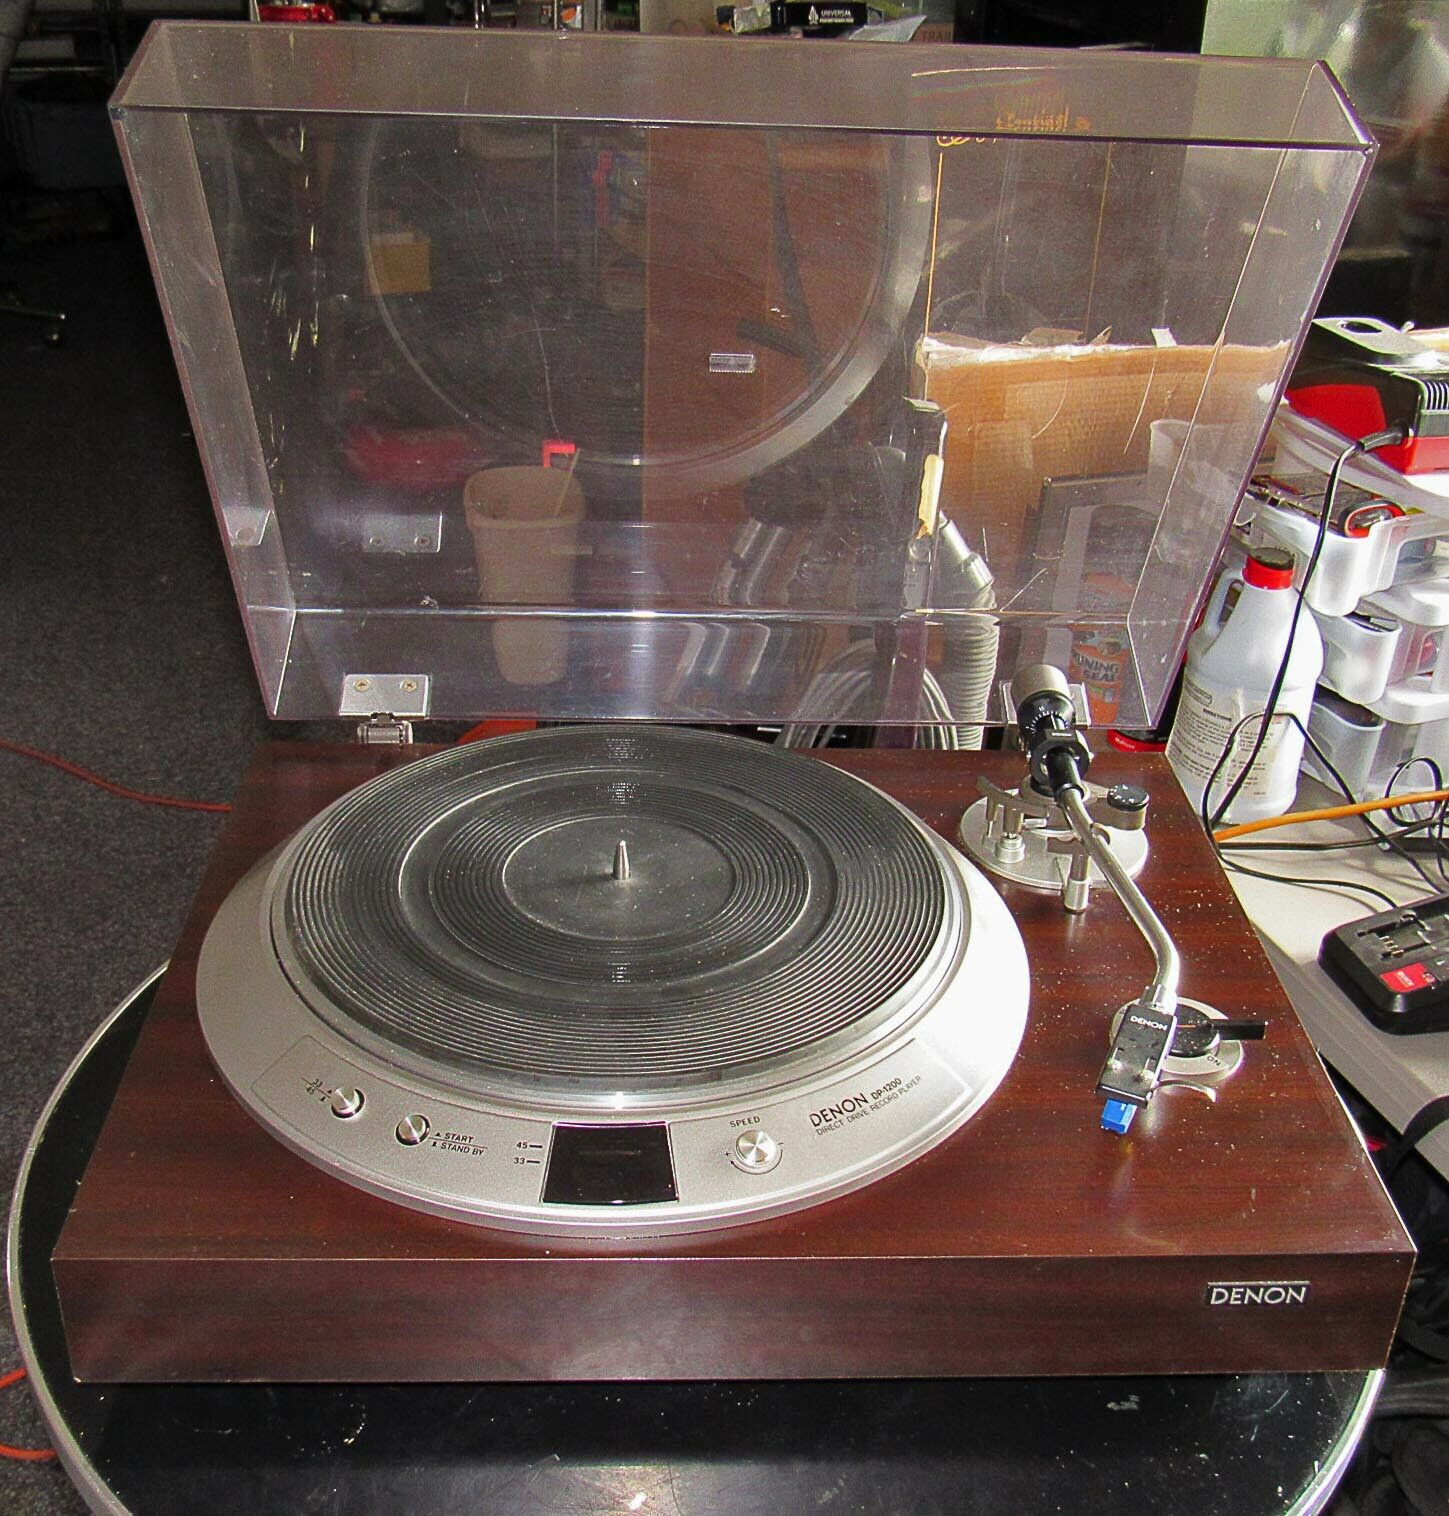 denon turntable Dp-1200 used beautiful denon 103 cartridge needs service. Buy it now for 423.00